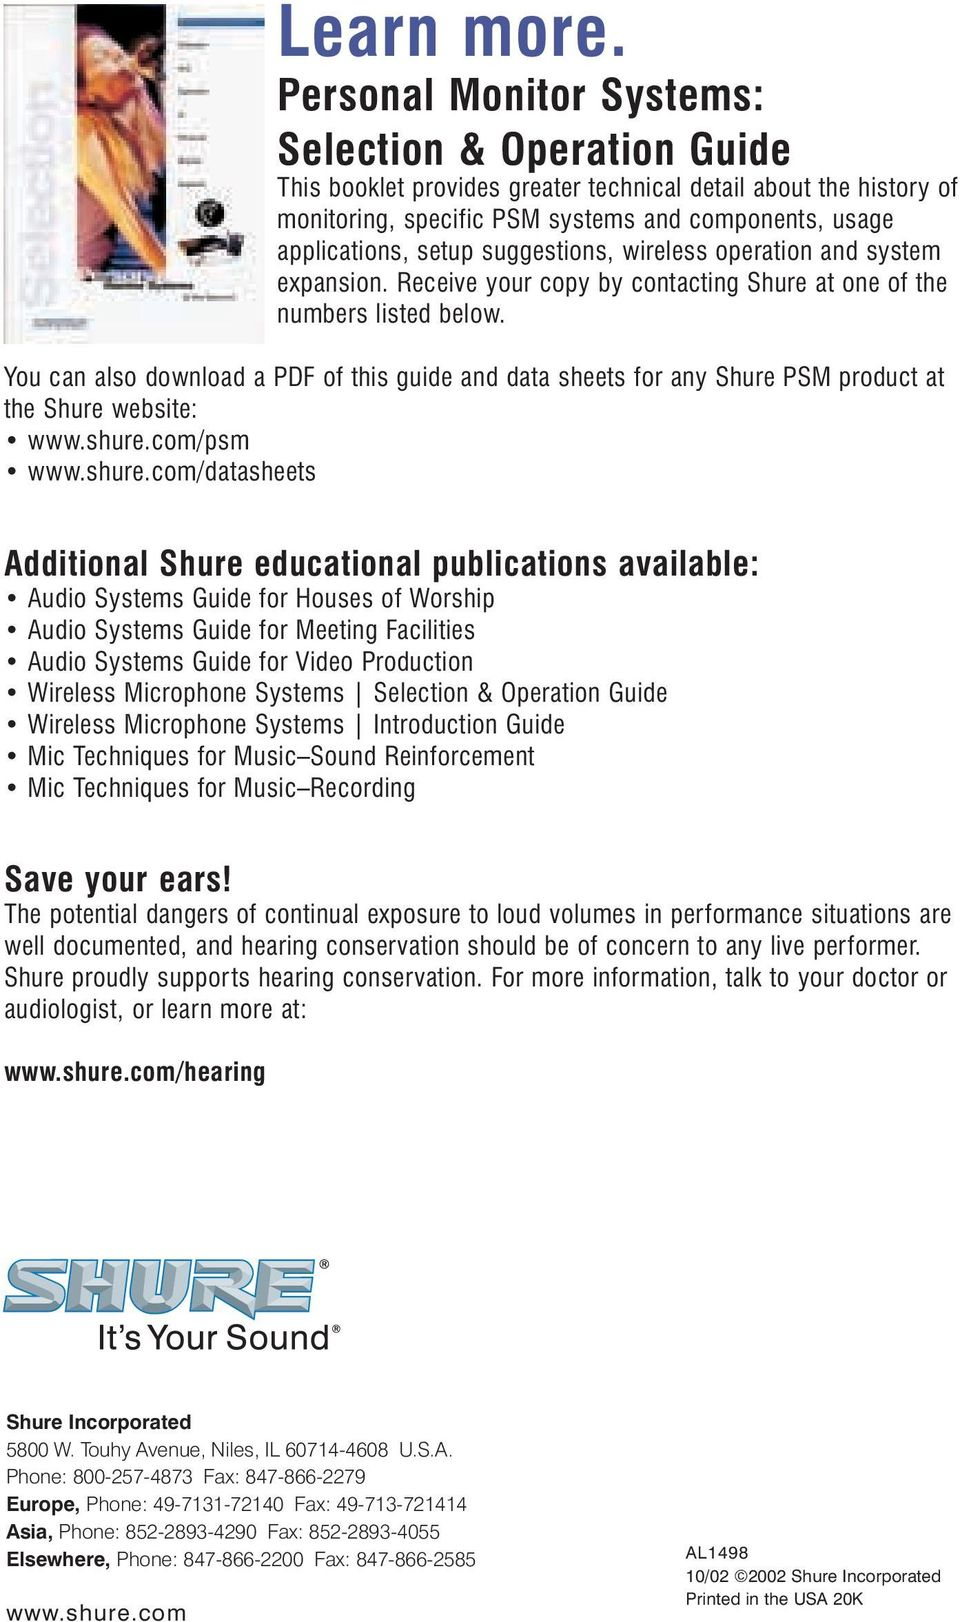 Introduction  A Shure Educational Publication  Personal